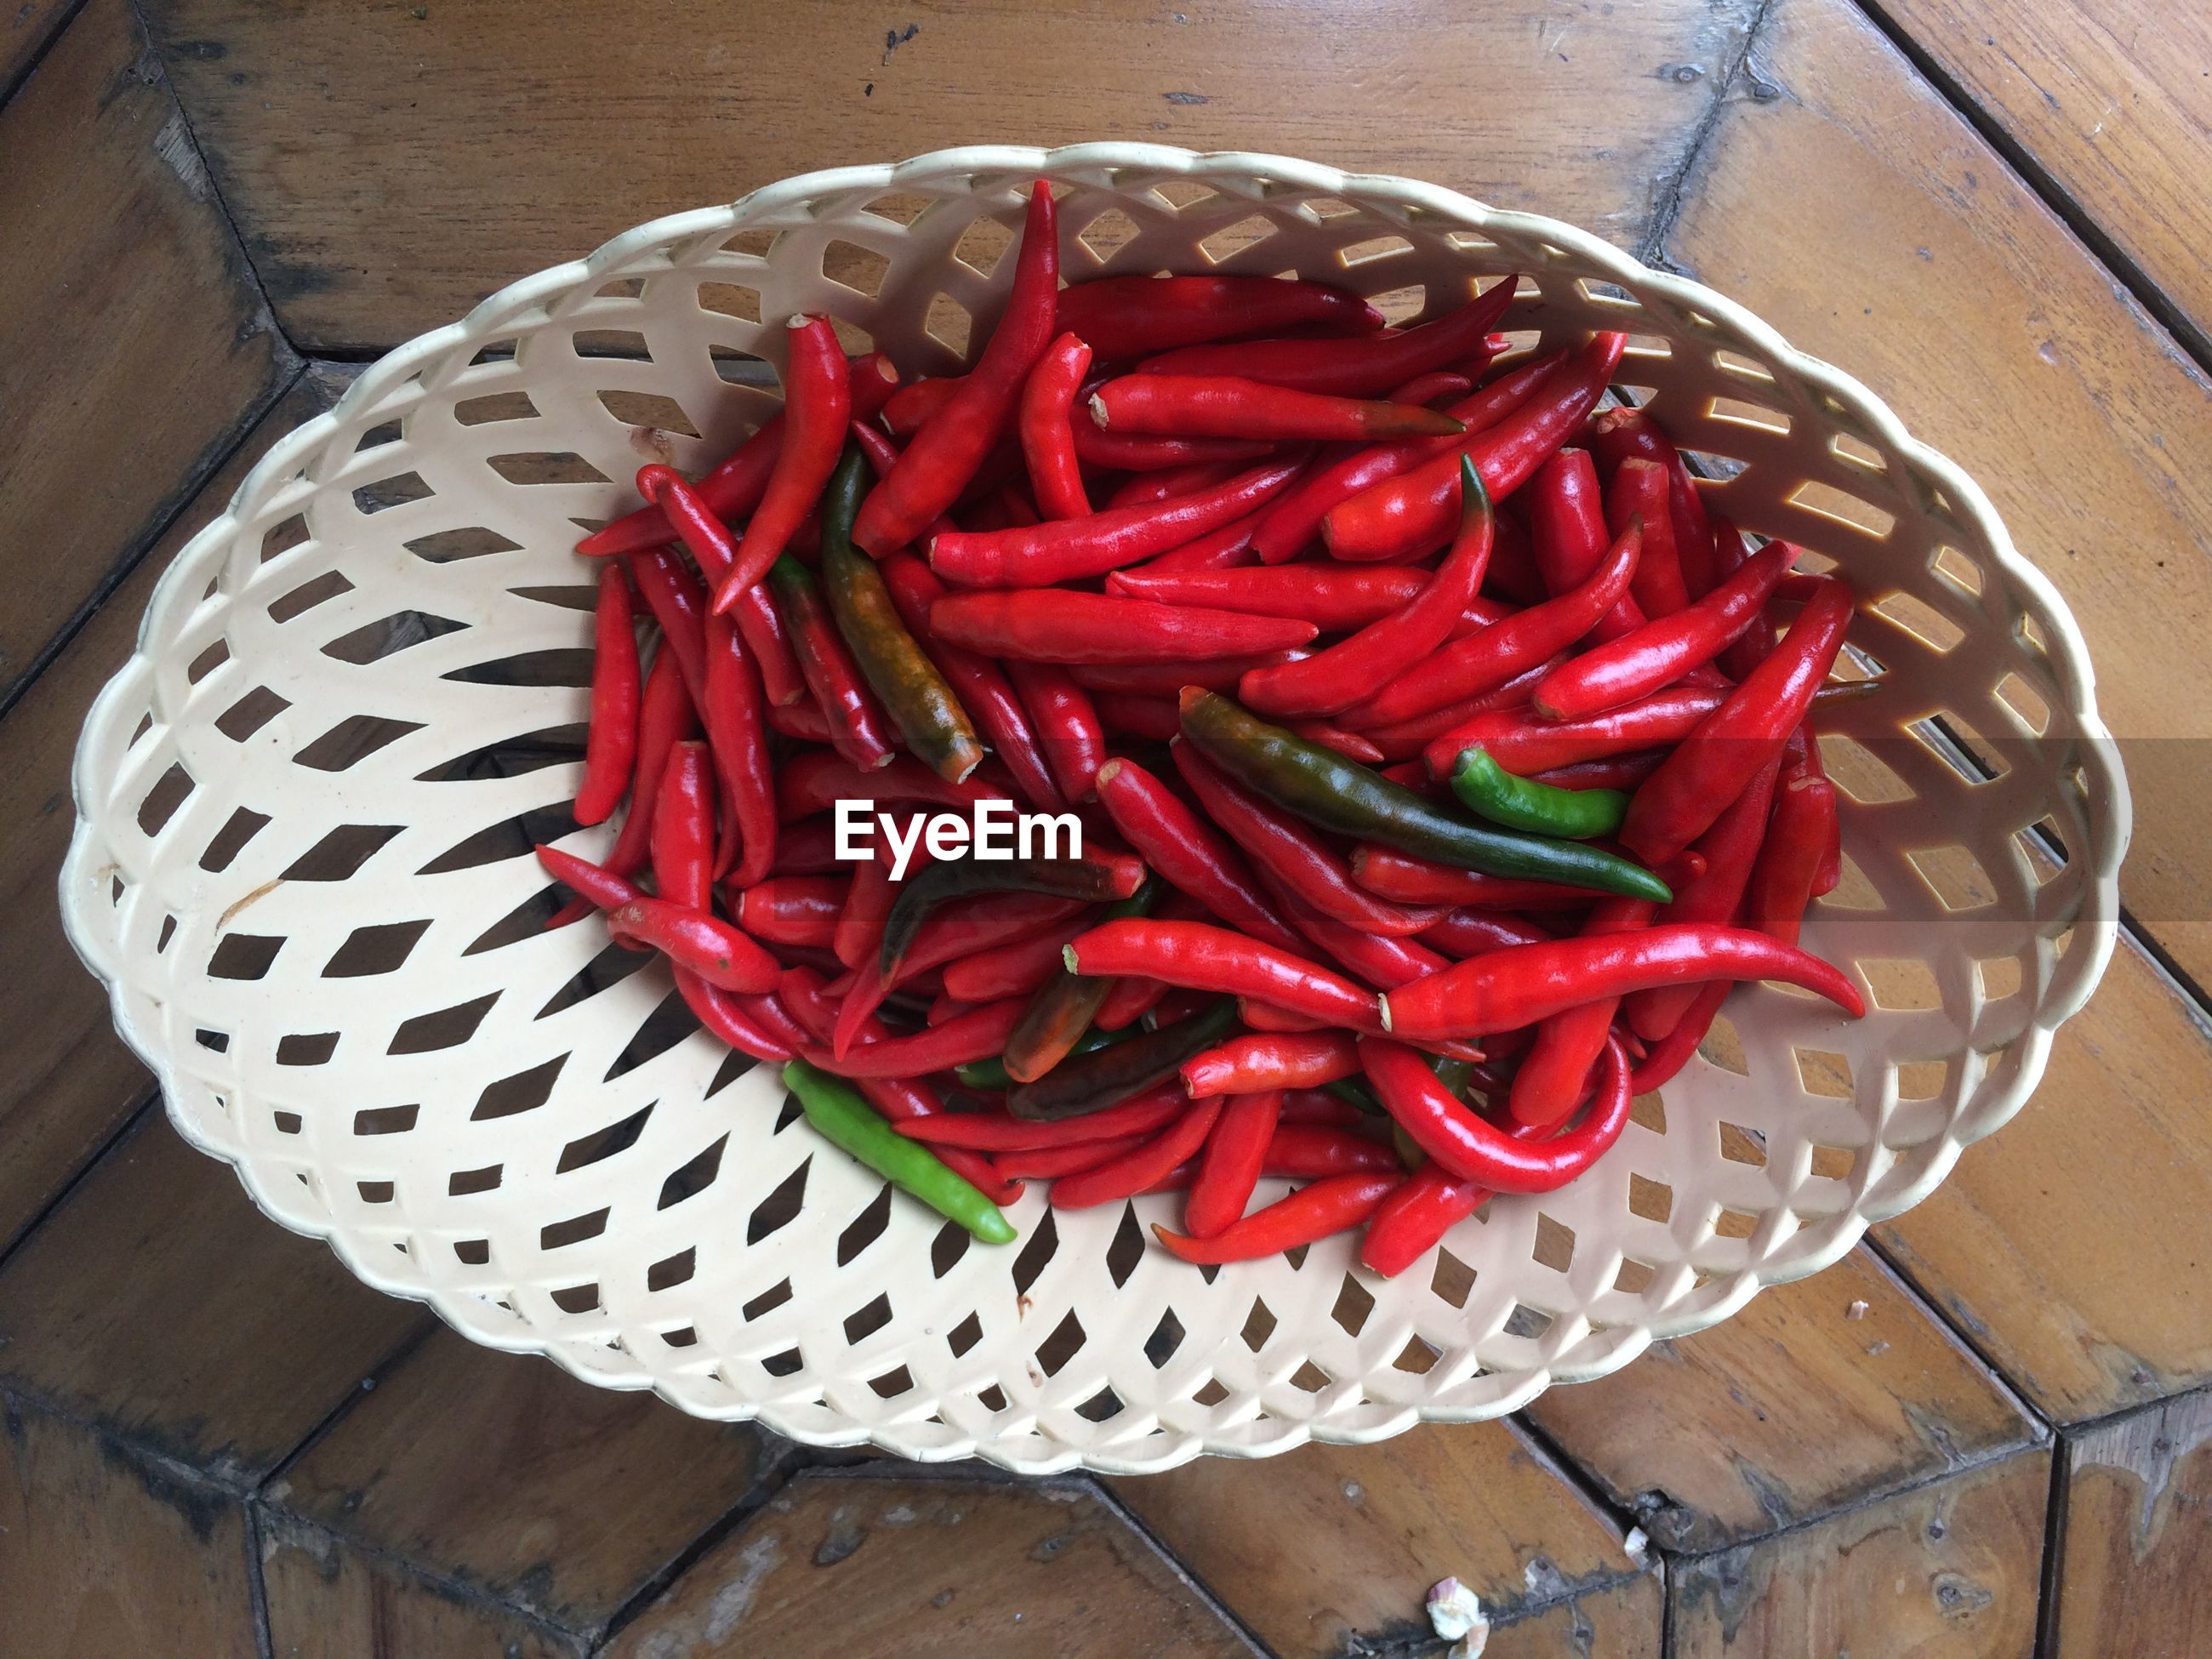 High angle view of chili peppers in bowl on table